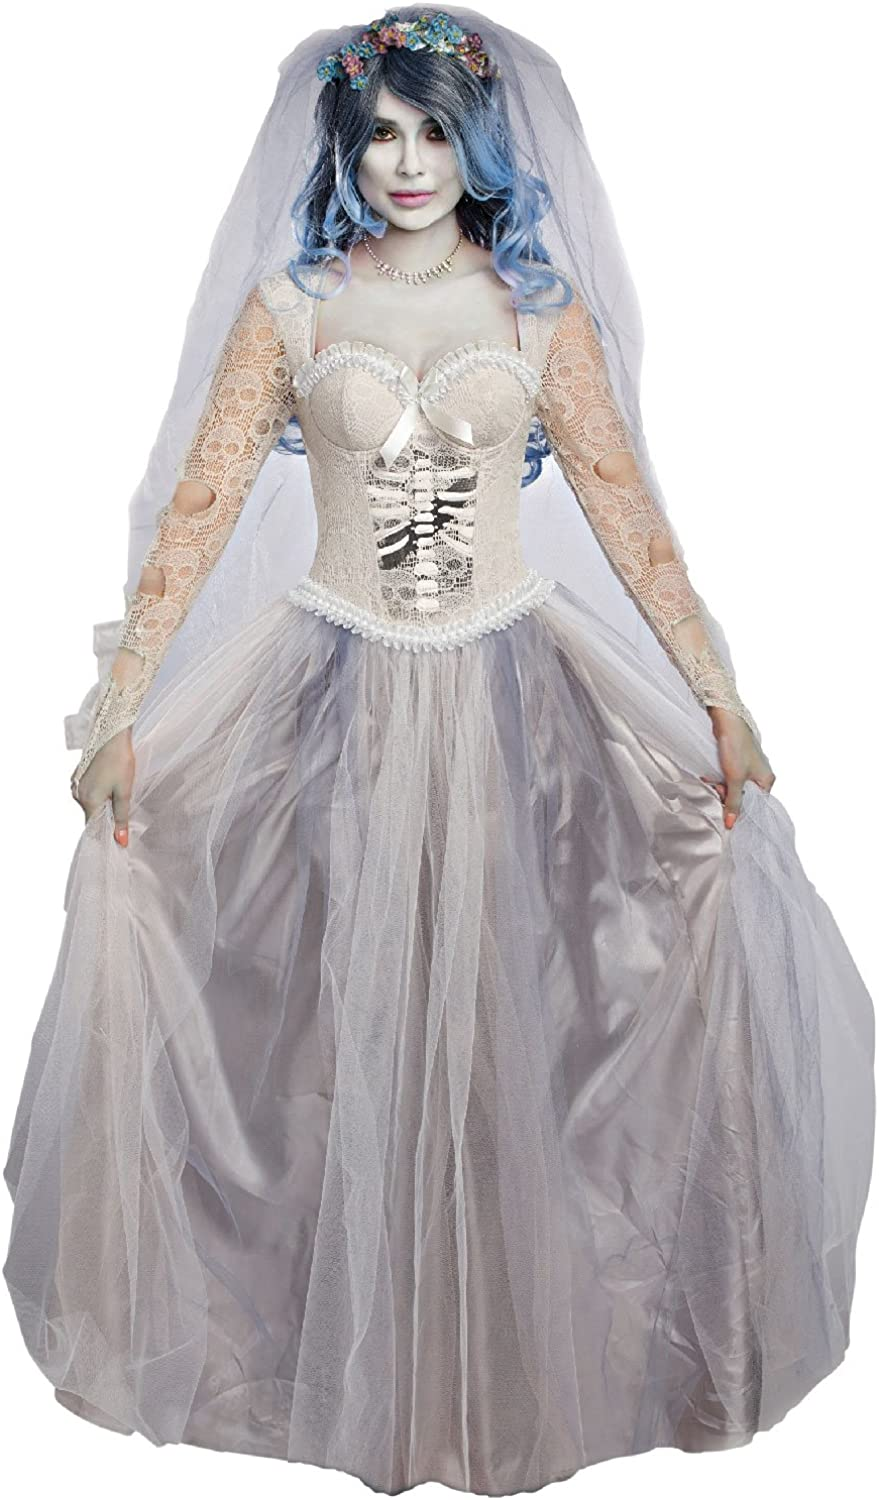 Dreamgirl 10647 Dying to Marry, Medium